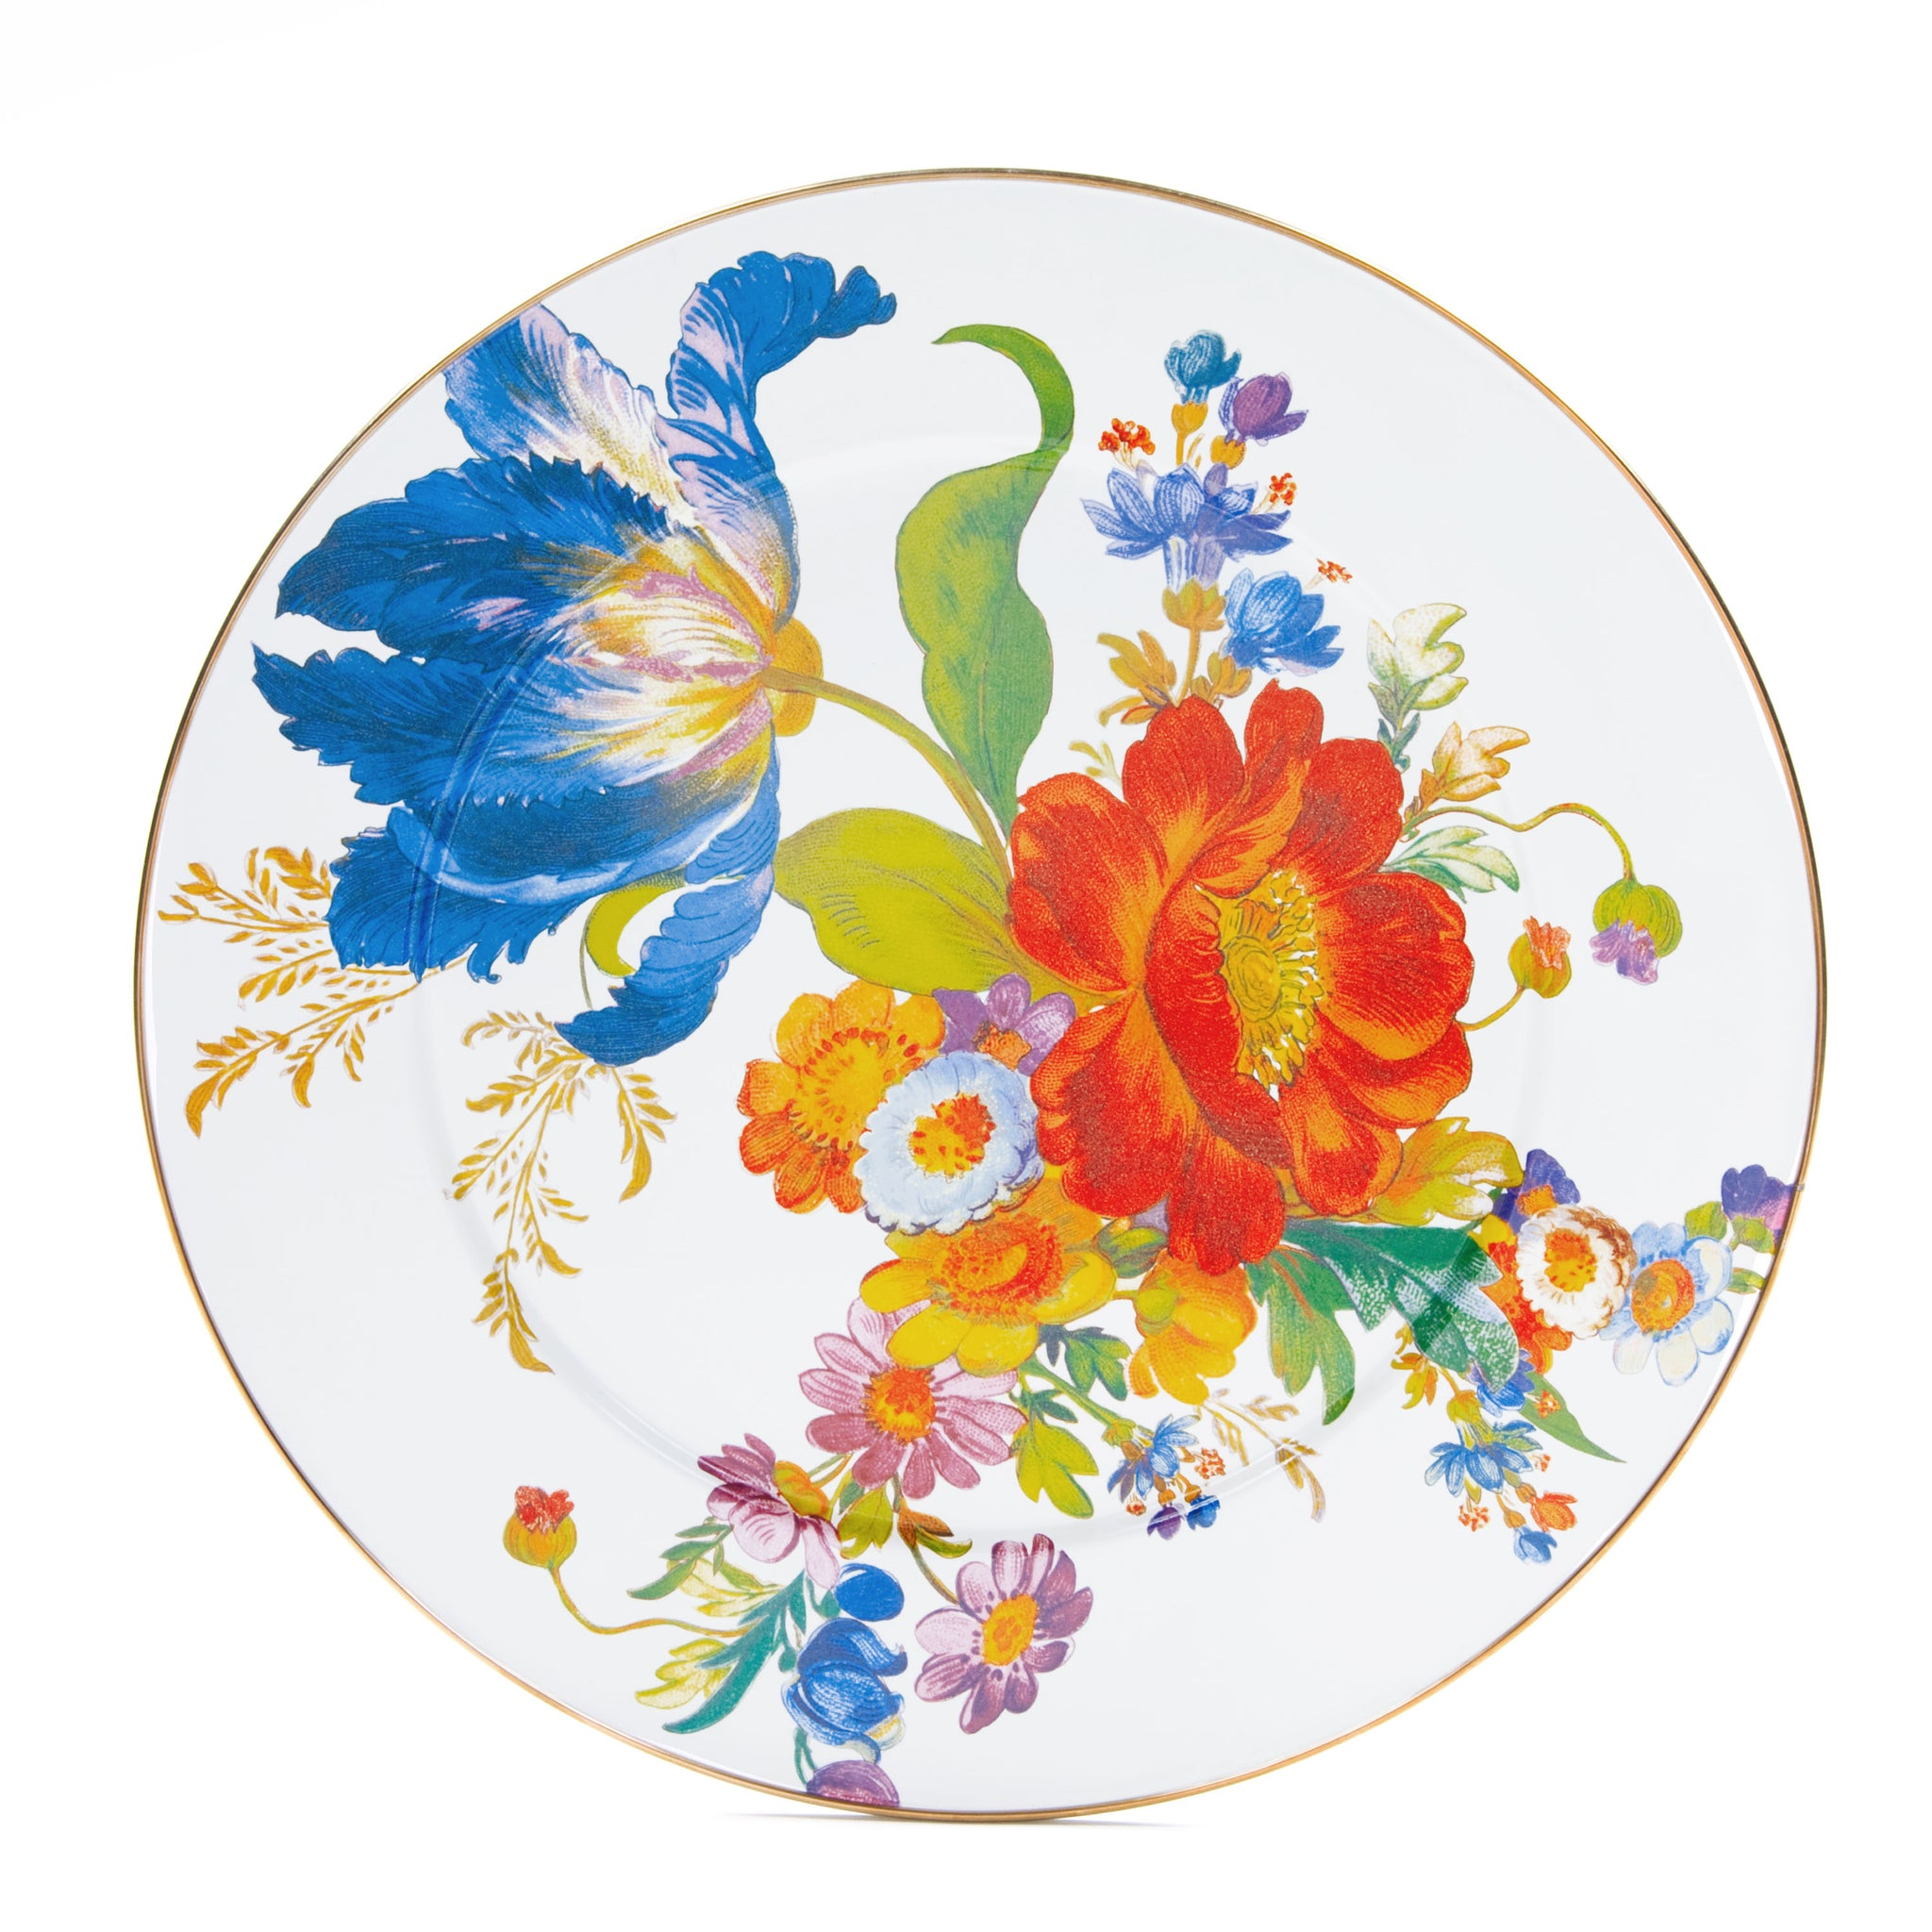 Mackenzie-Childs Serving Platter in Flower Market Pattern